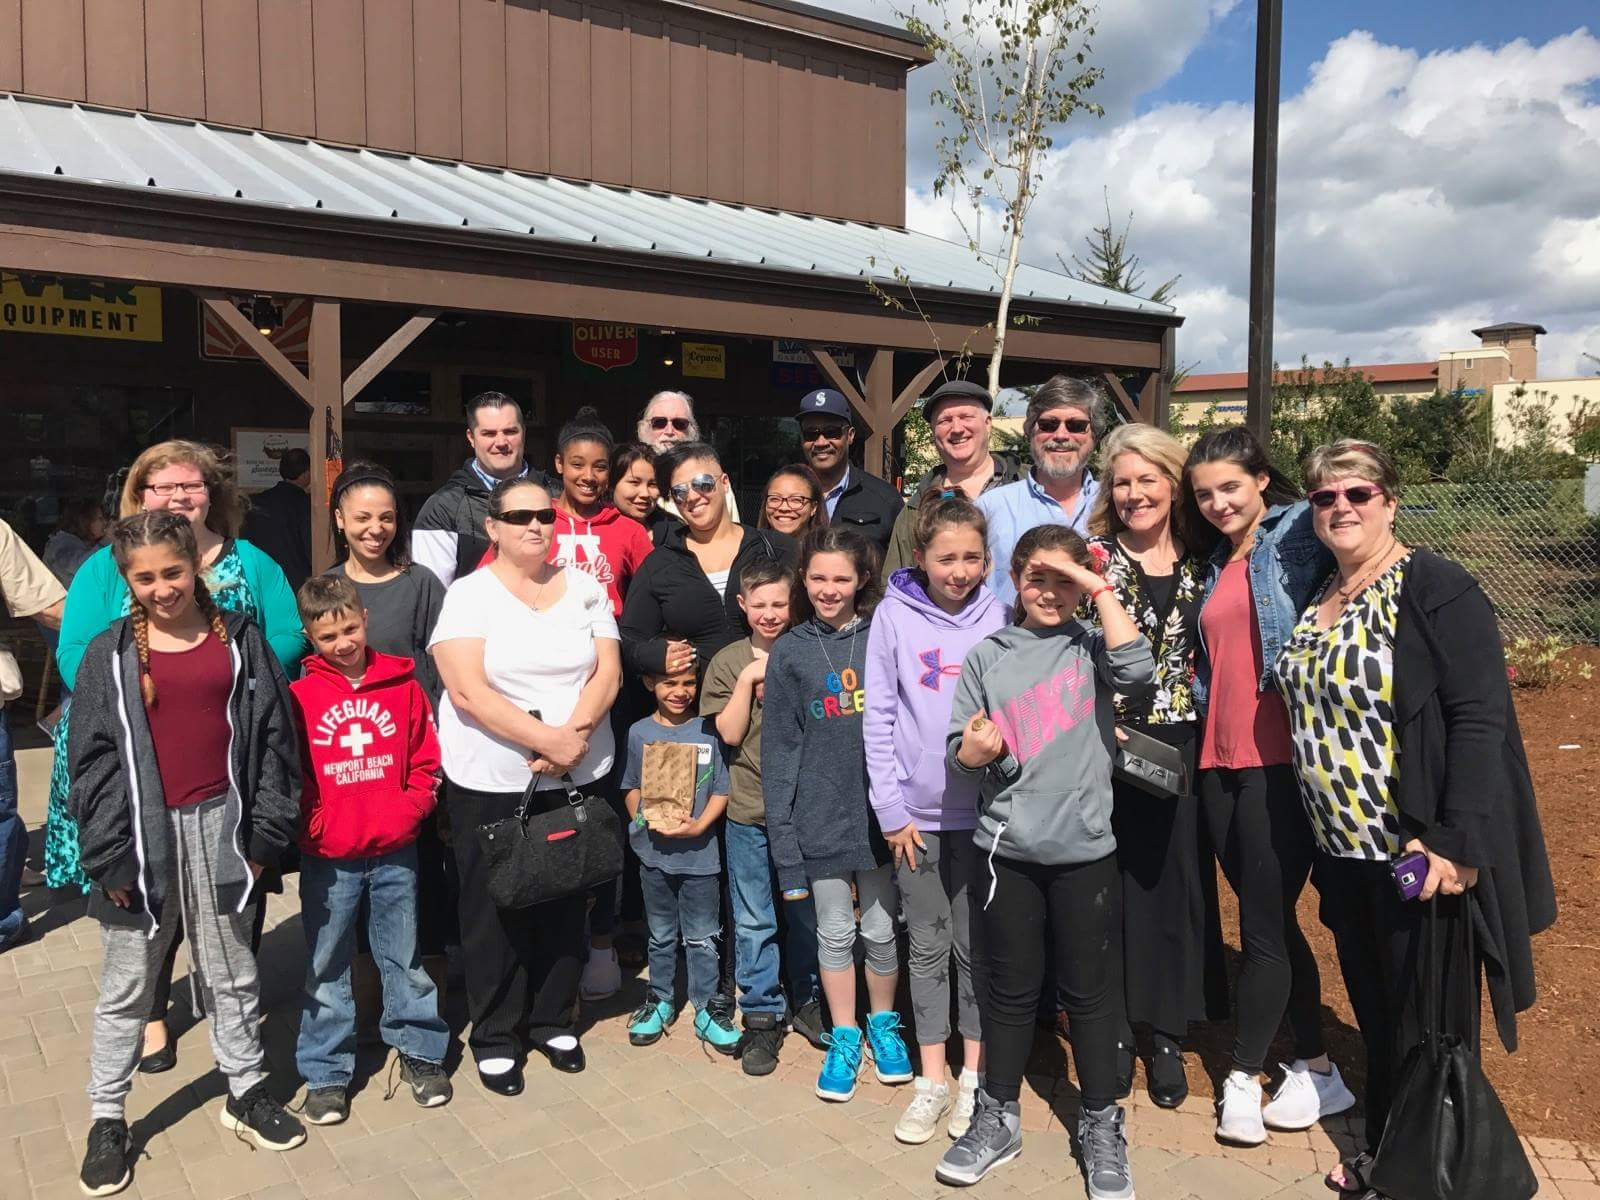 There are children pictured here who have been adopted out of foster care, children who are in long-term care and families who are fortunate to have been enlarged through their presence. If you want to adopt, think about the children who are still waiting for their chance of hope for a future -- consider adopting in your state!